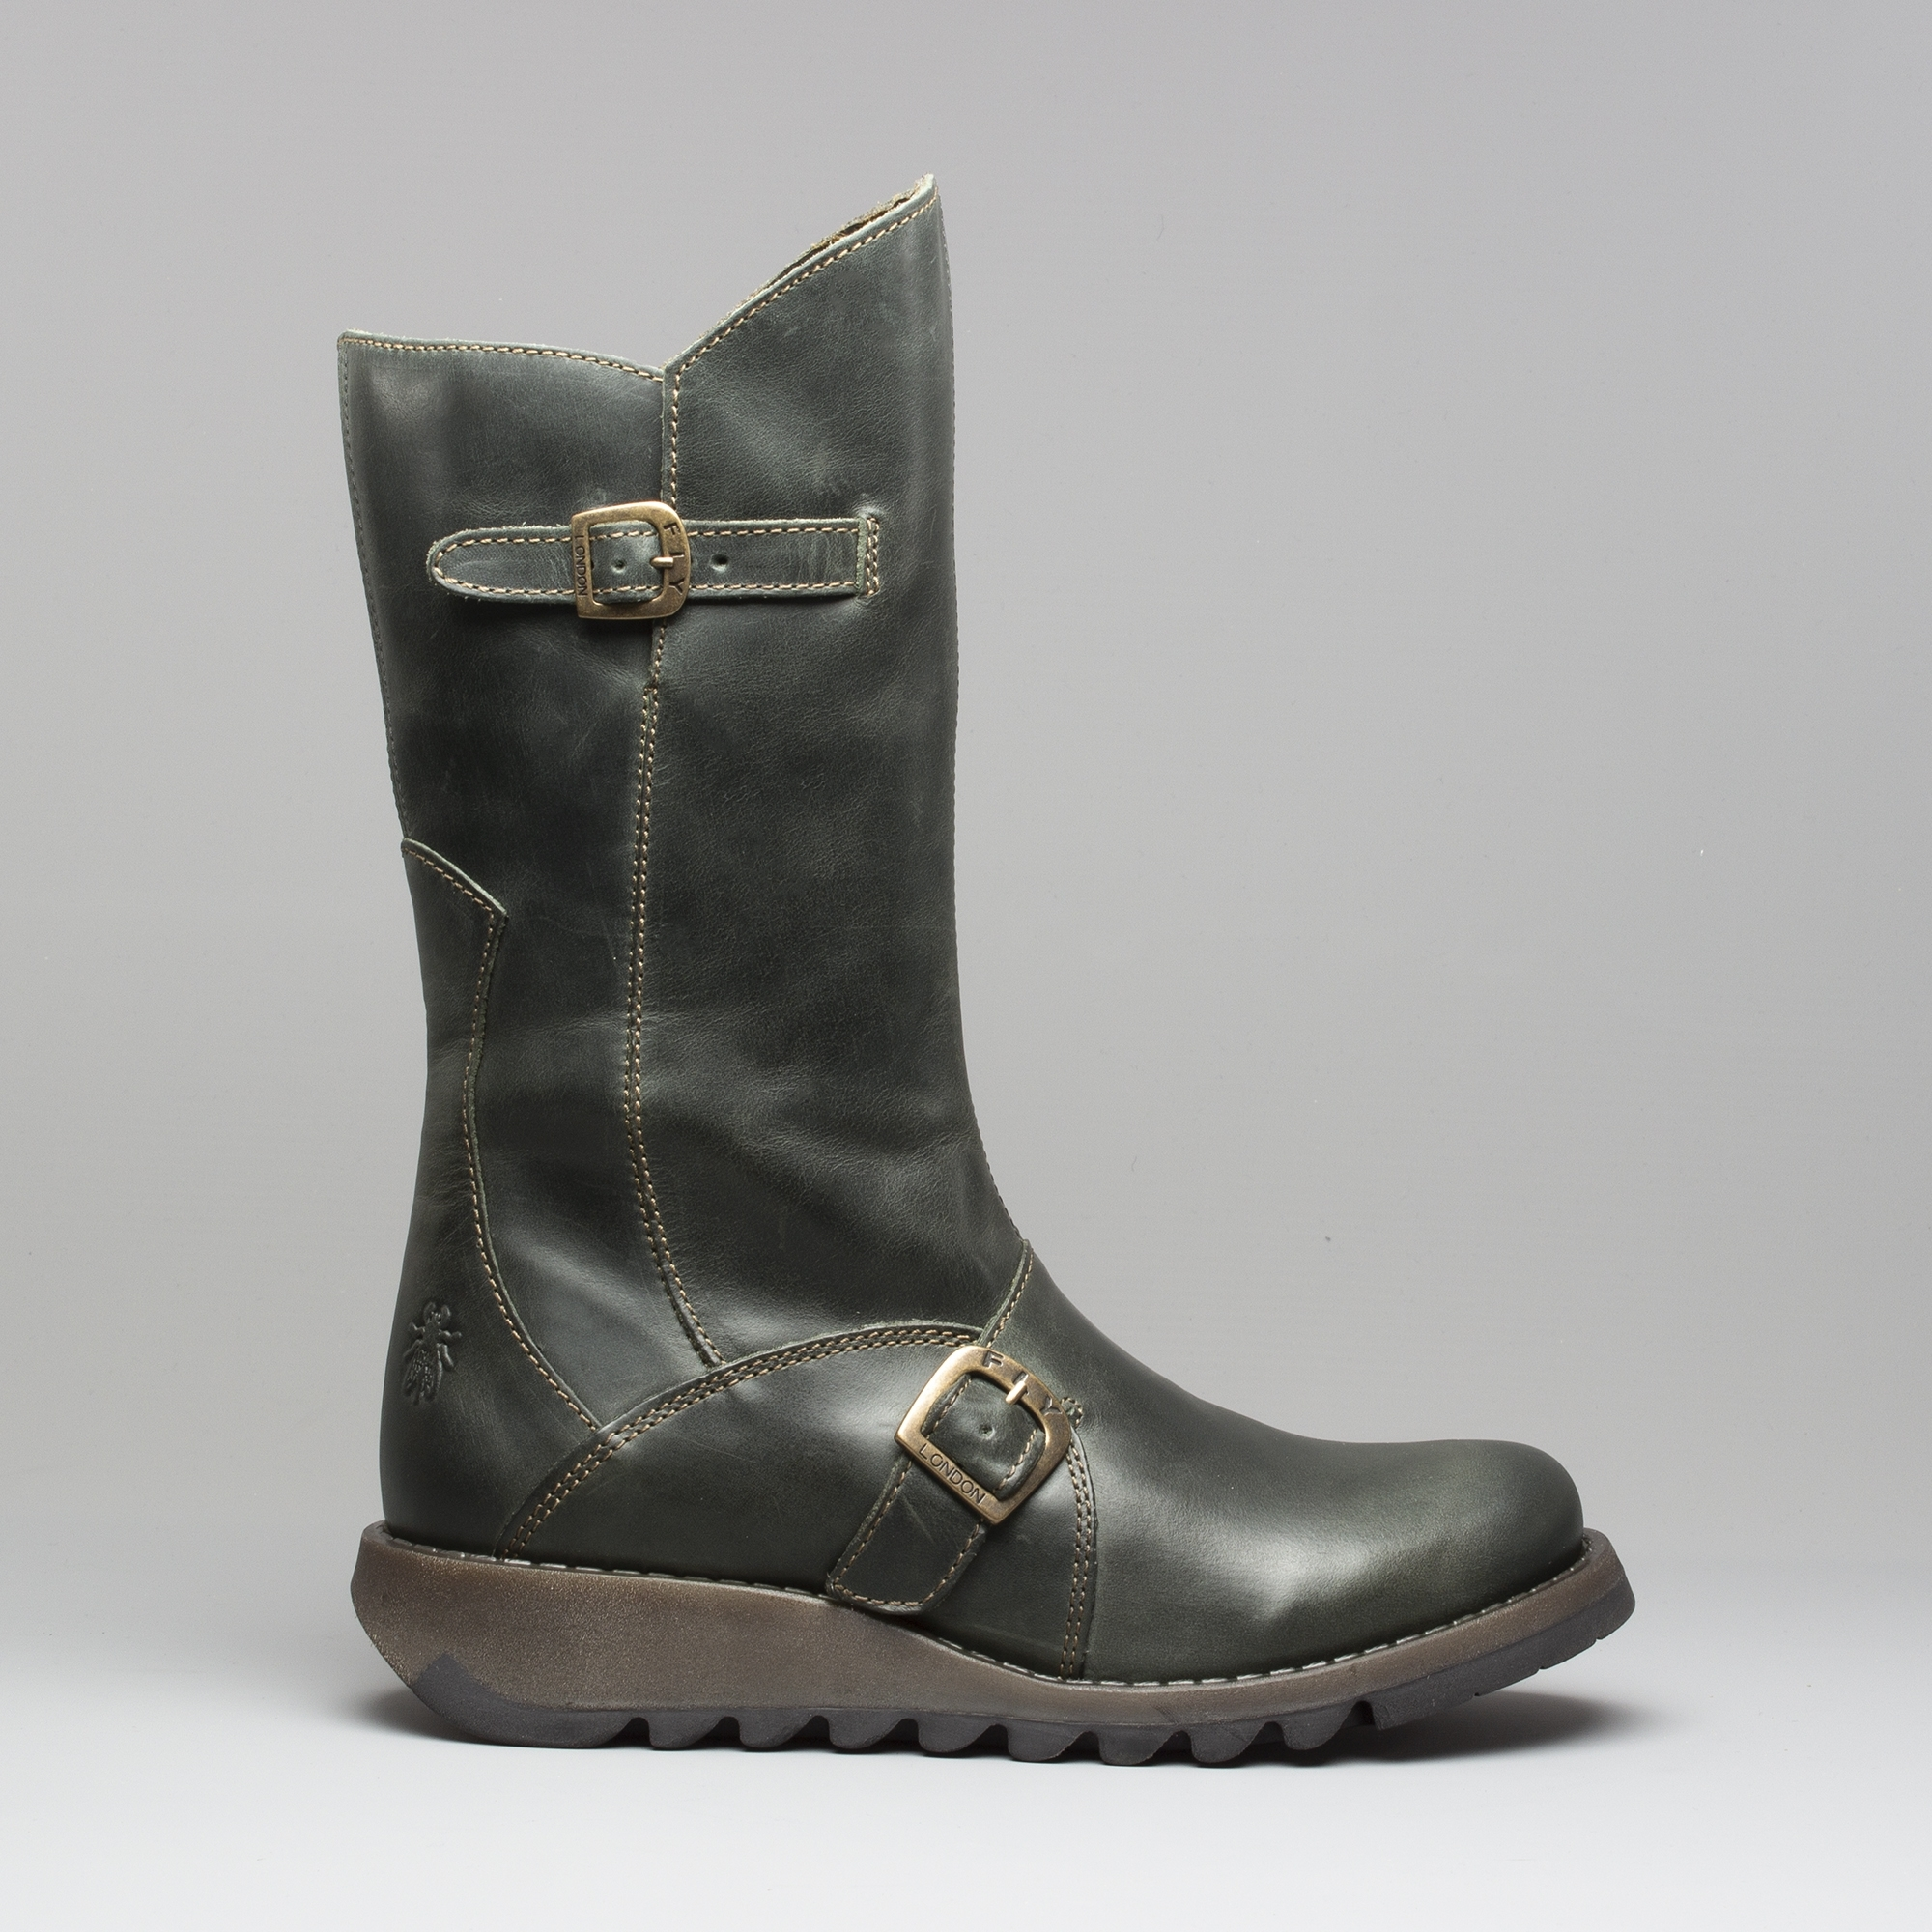 84d185a5f06db Fly London MES 2 Leather Mid Calf Boots Diesel | Shuperb